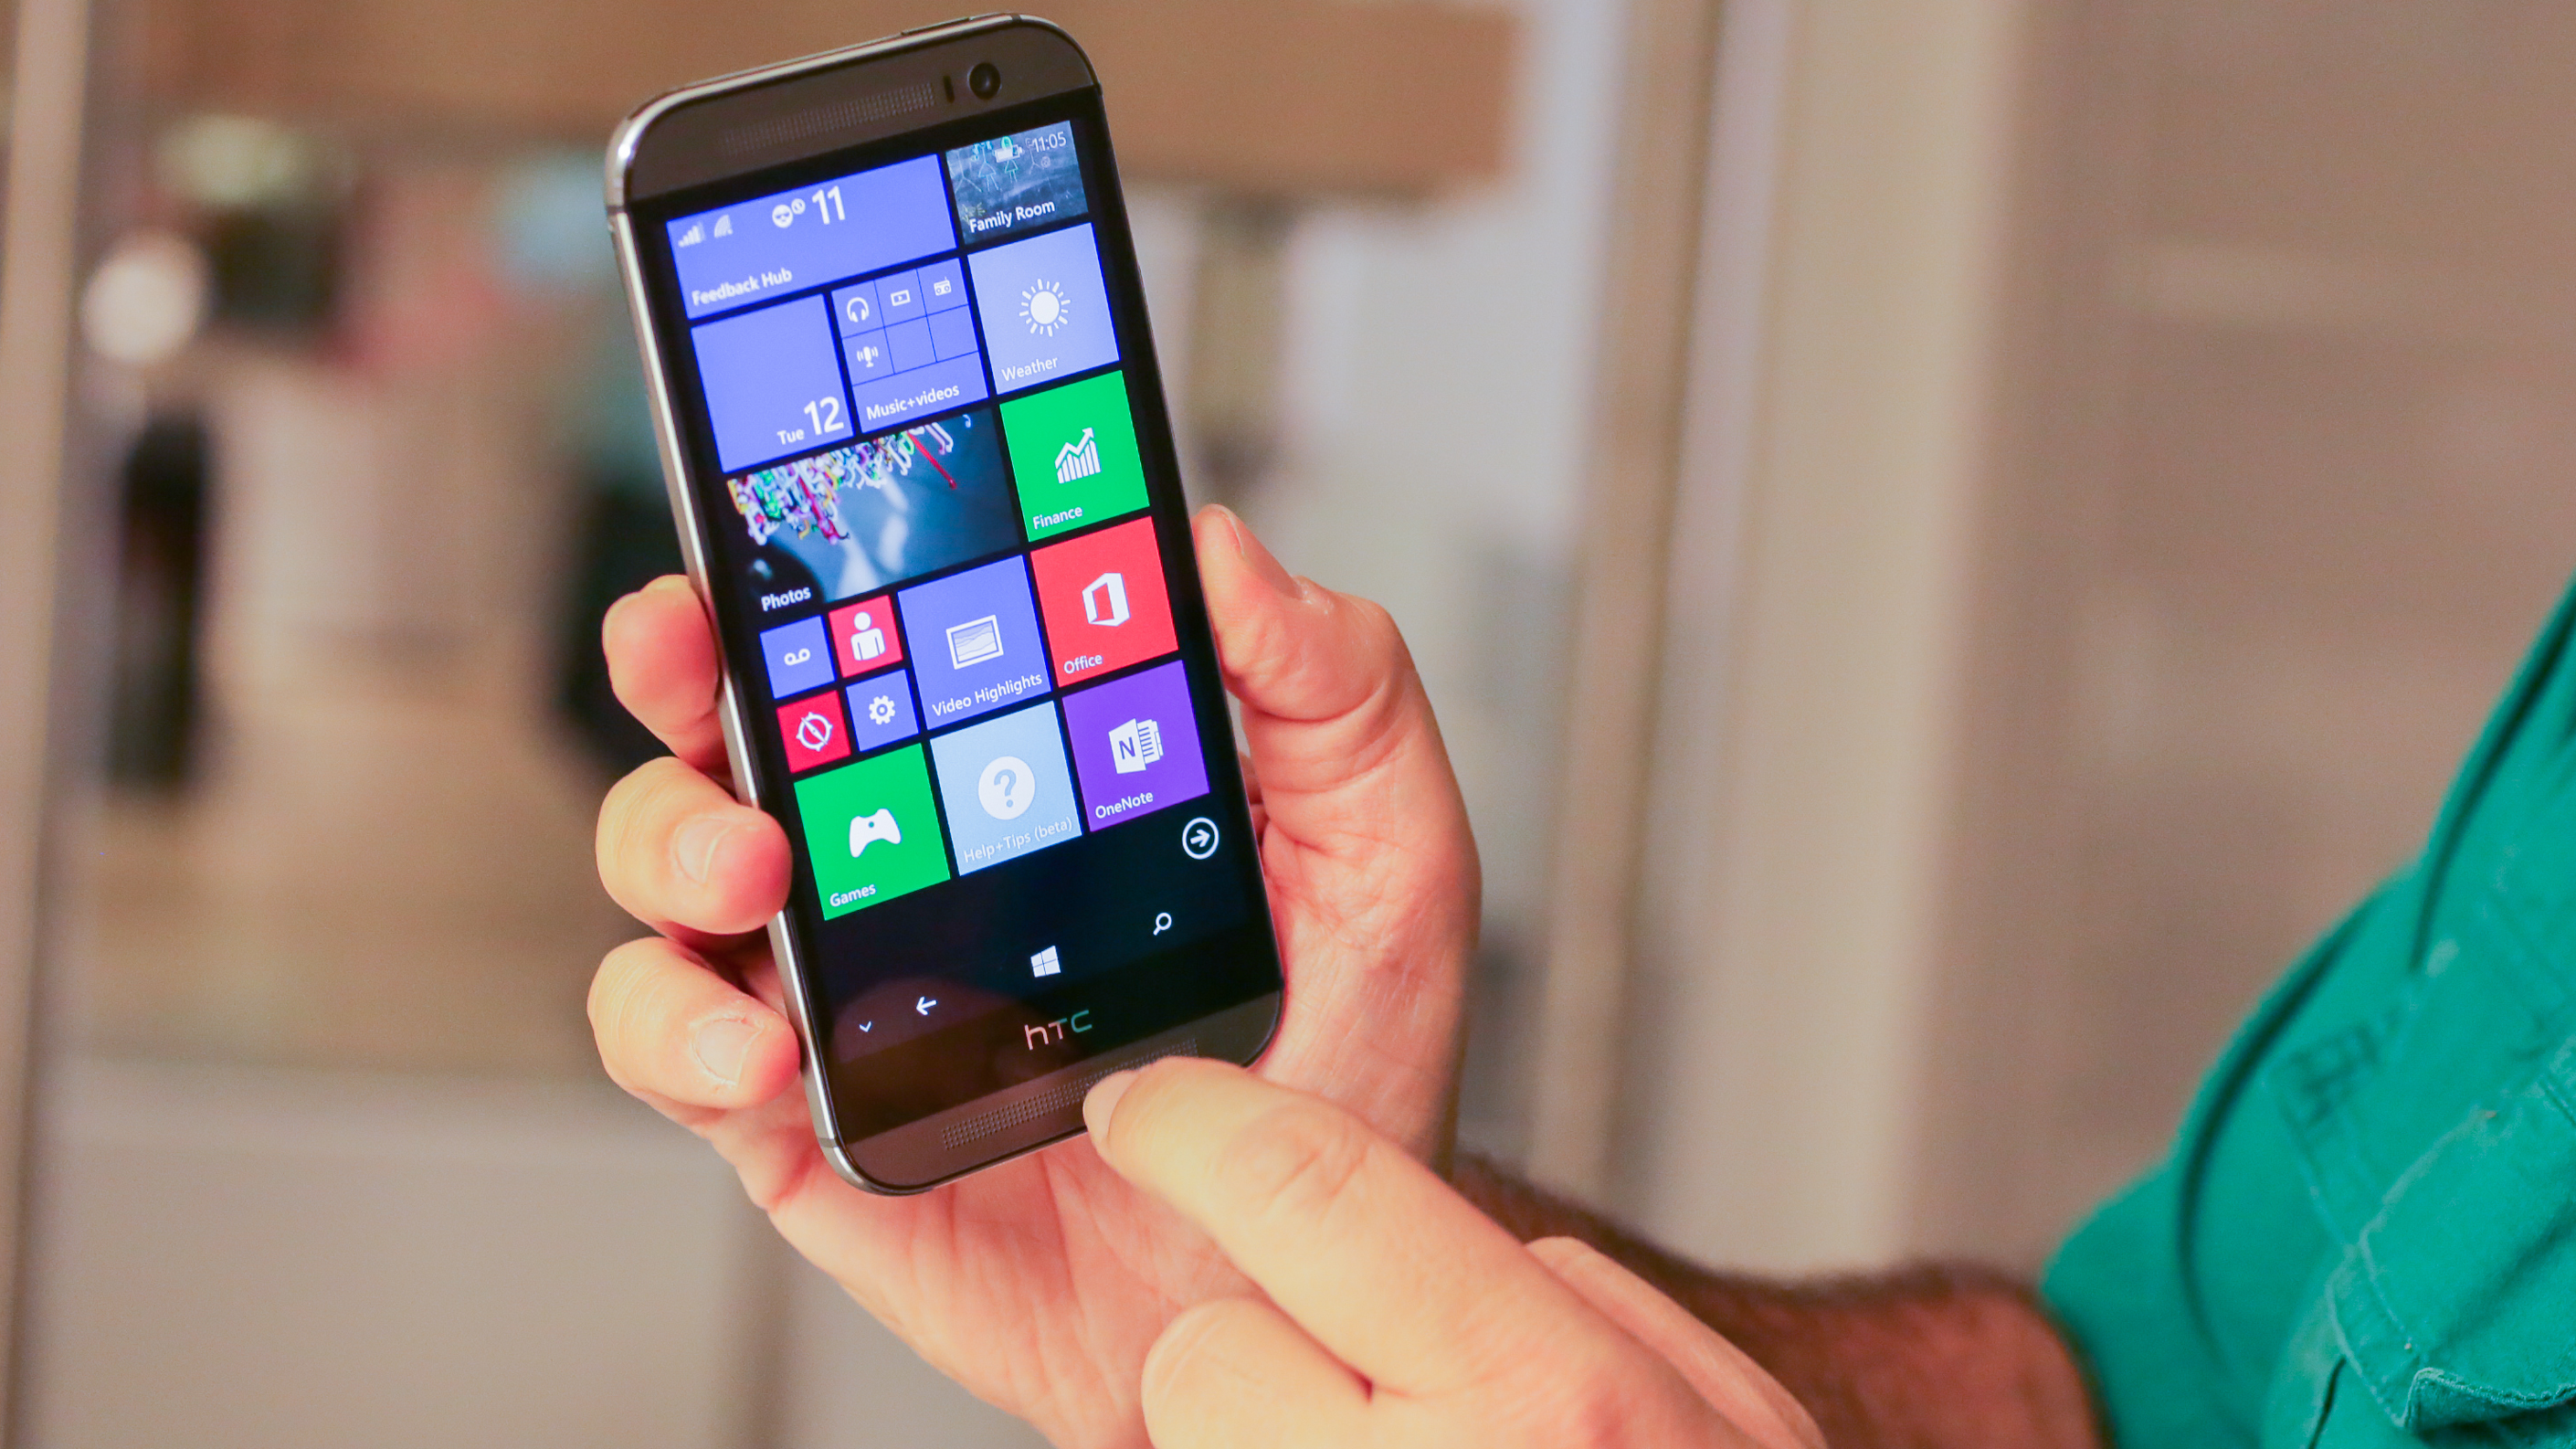 htc-one-m8-for-windows-product-photos26.jpg